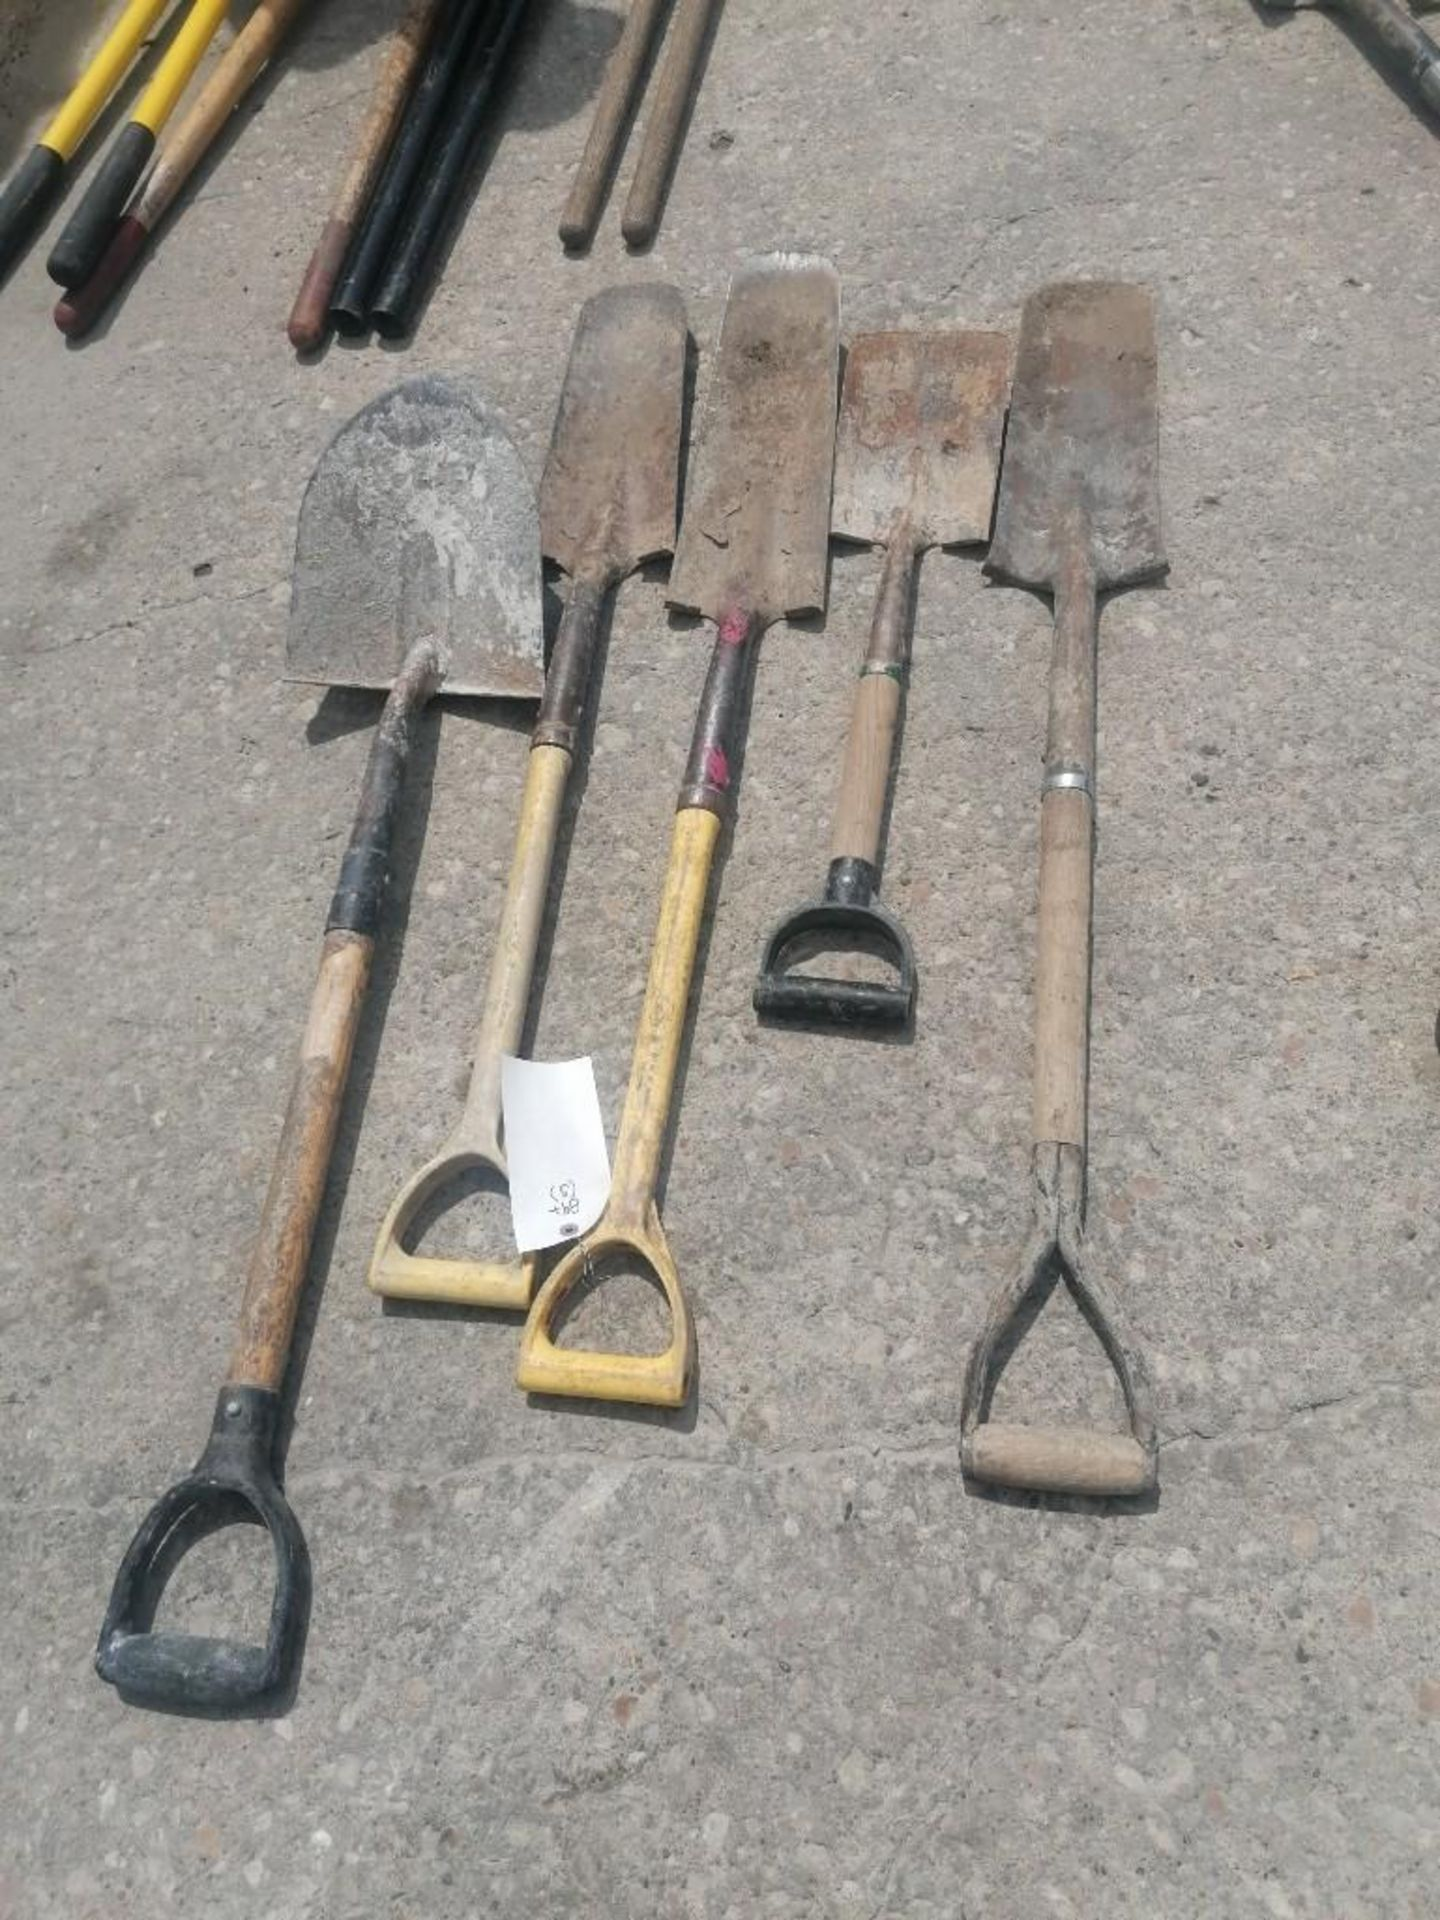 Lot 46 - (5) Shovels. Located at 301 E Henry Street, Mt. Pleasant, IA 52641.